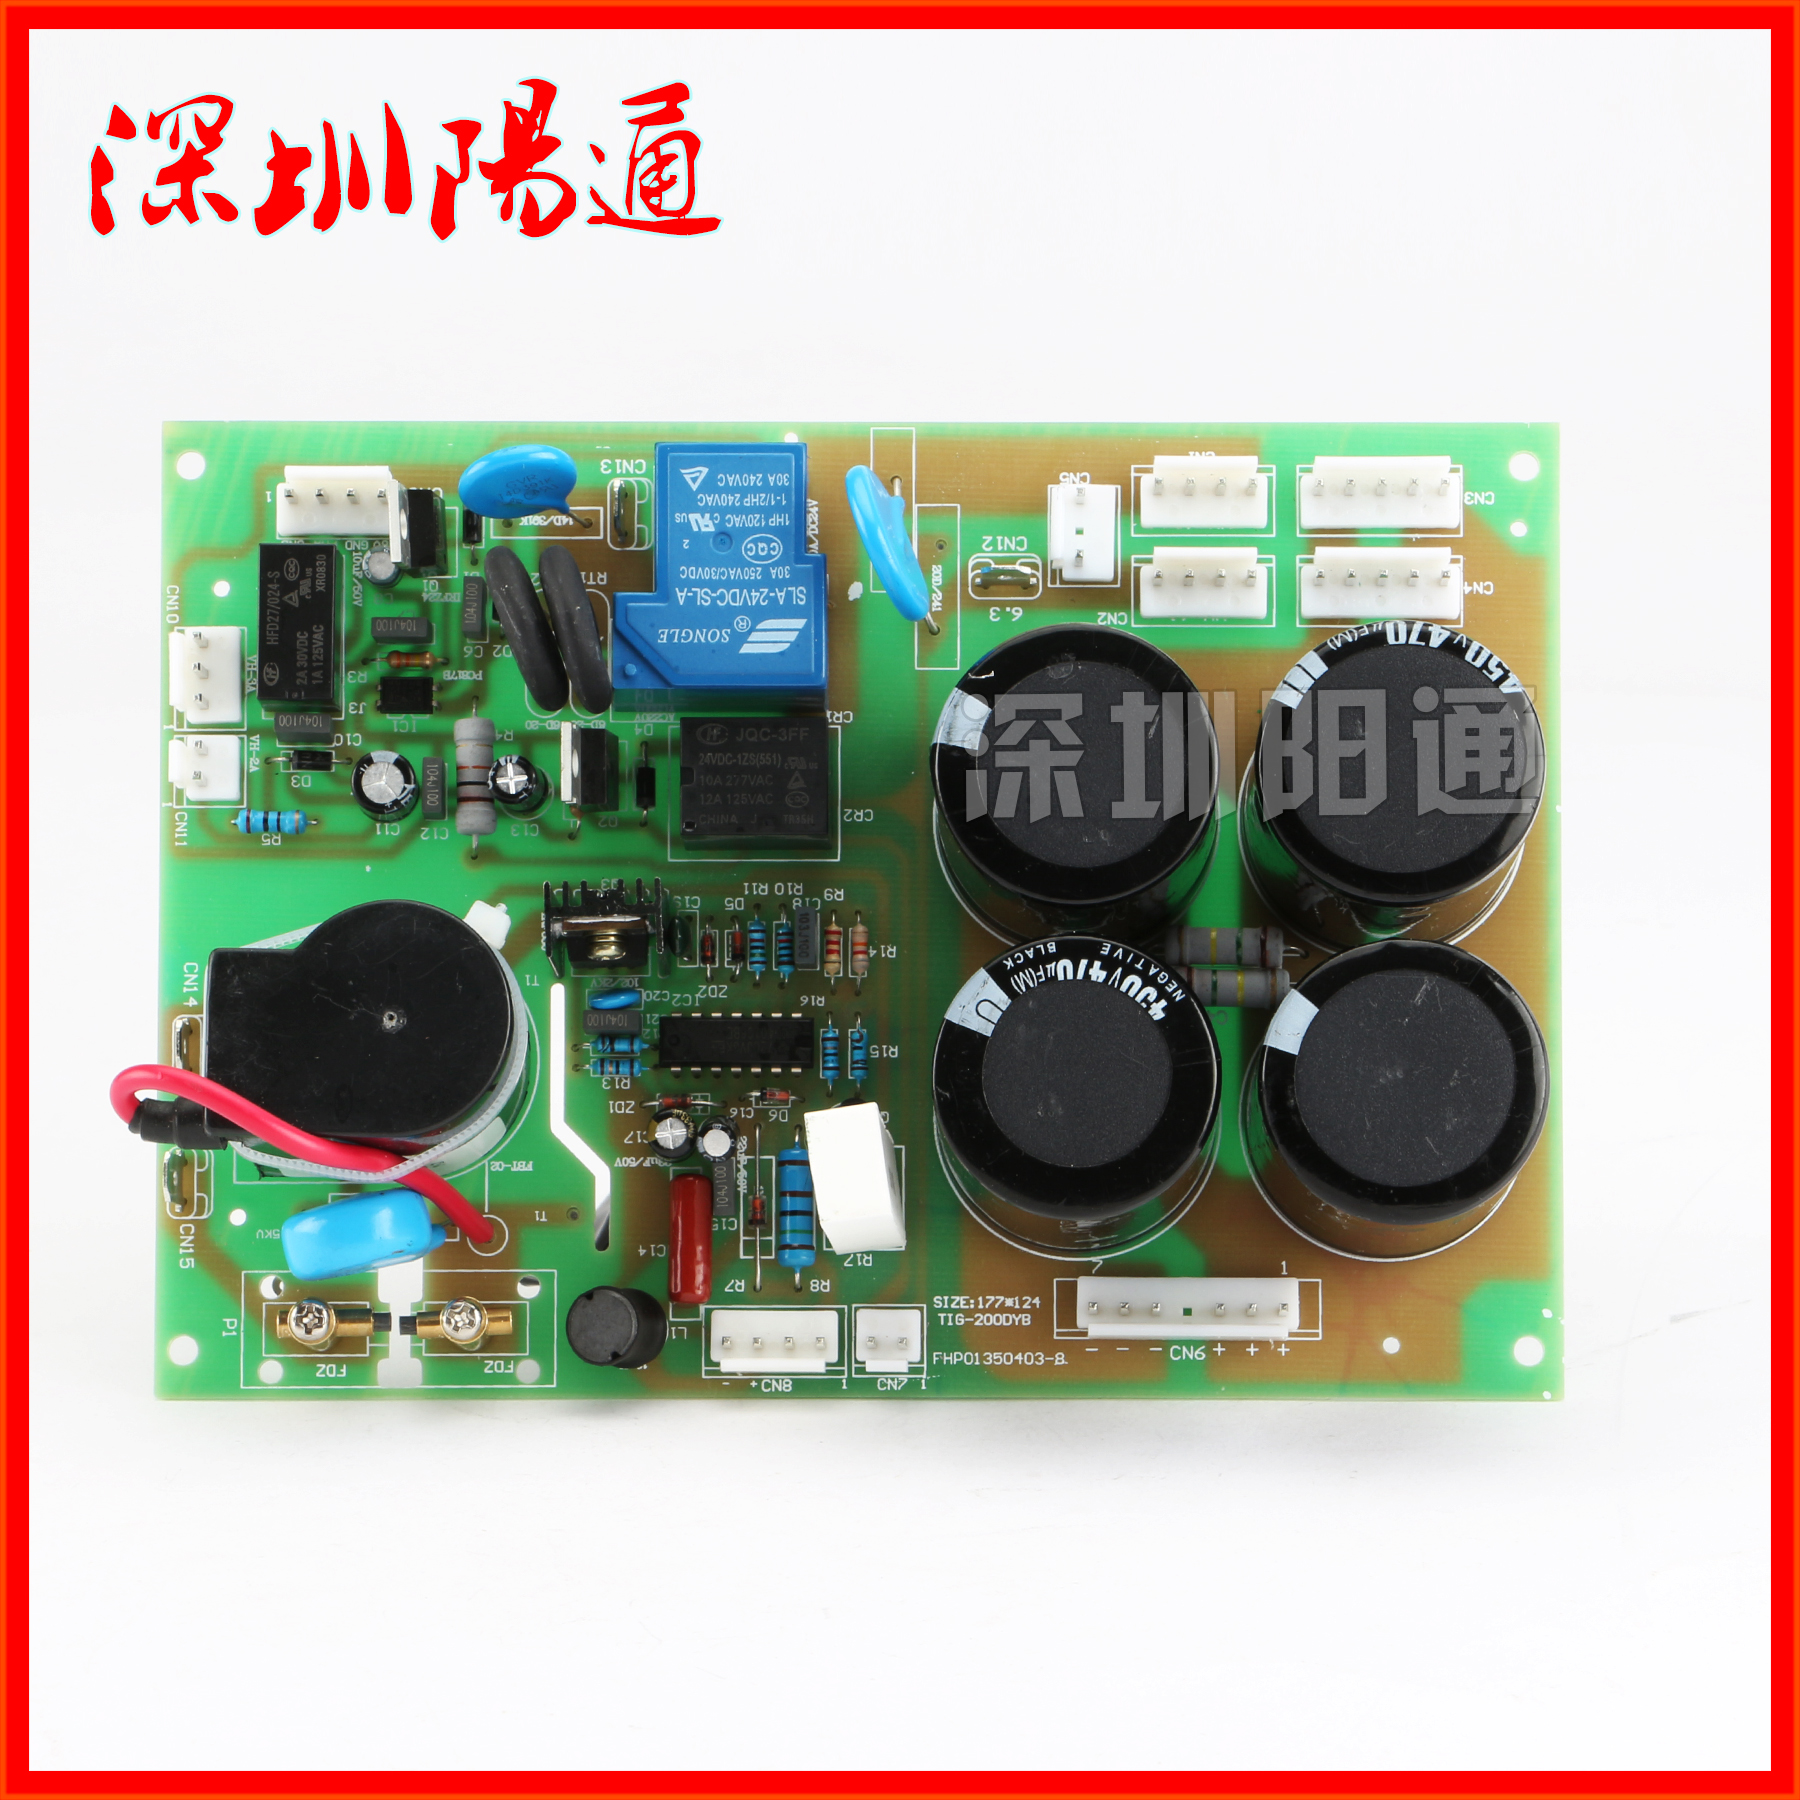 Inverter Tig Welder Curcuit Board Igbt Circuit Manufacturers In Lulusoso Guangzhou Fenghuo A Argon Arc Welding Machine Power High Frequency 1800x1800